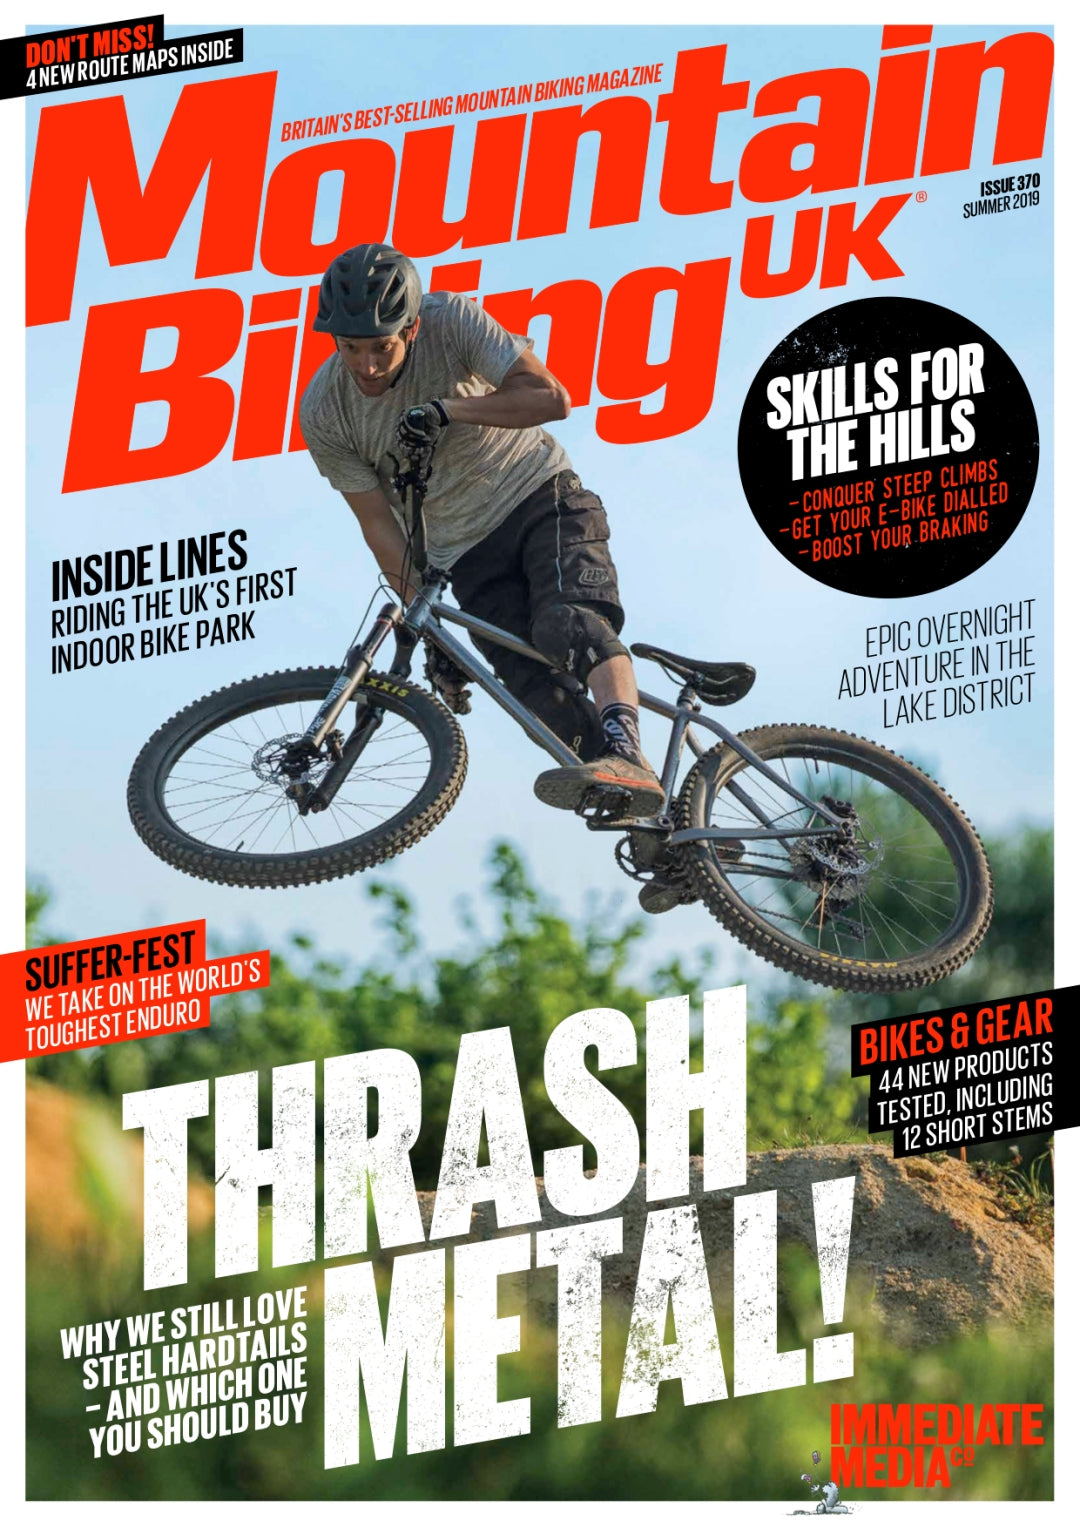 Drysure has been recommended by Mountain Biking Uk Magazine